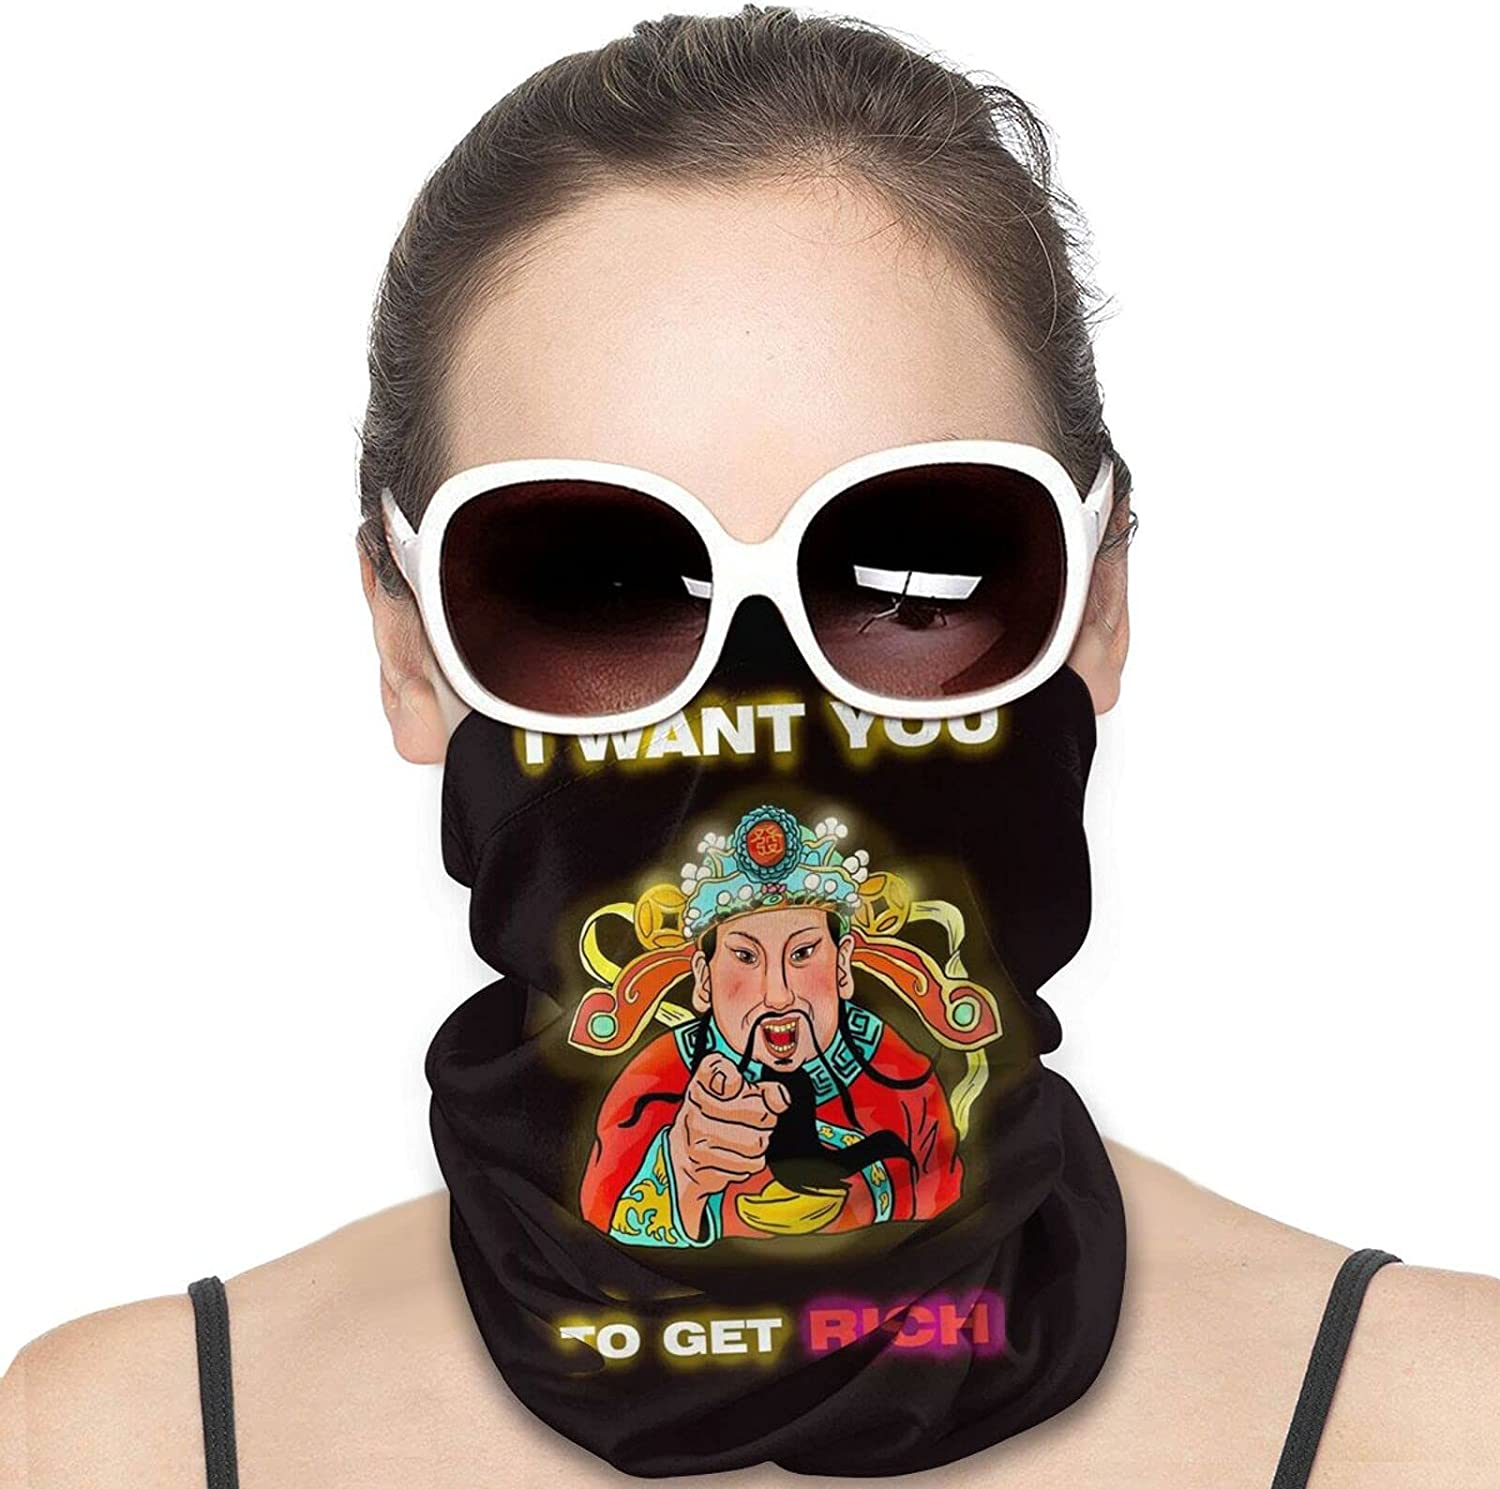 I WANT YOU TO GET RICH Round Neck Gaiter Bandnas Face Cover Uv Protection Prevent bask in Ice Scarf Headbands Perfect for Motorcycle Cycling Running Festival Raves Outdoors